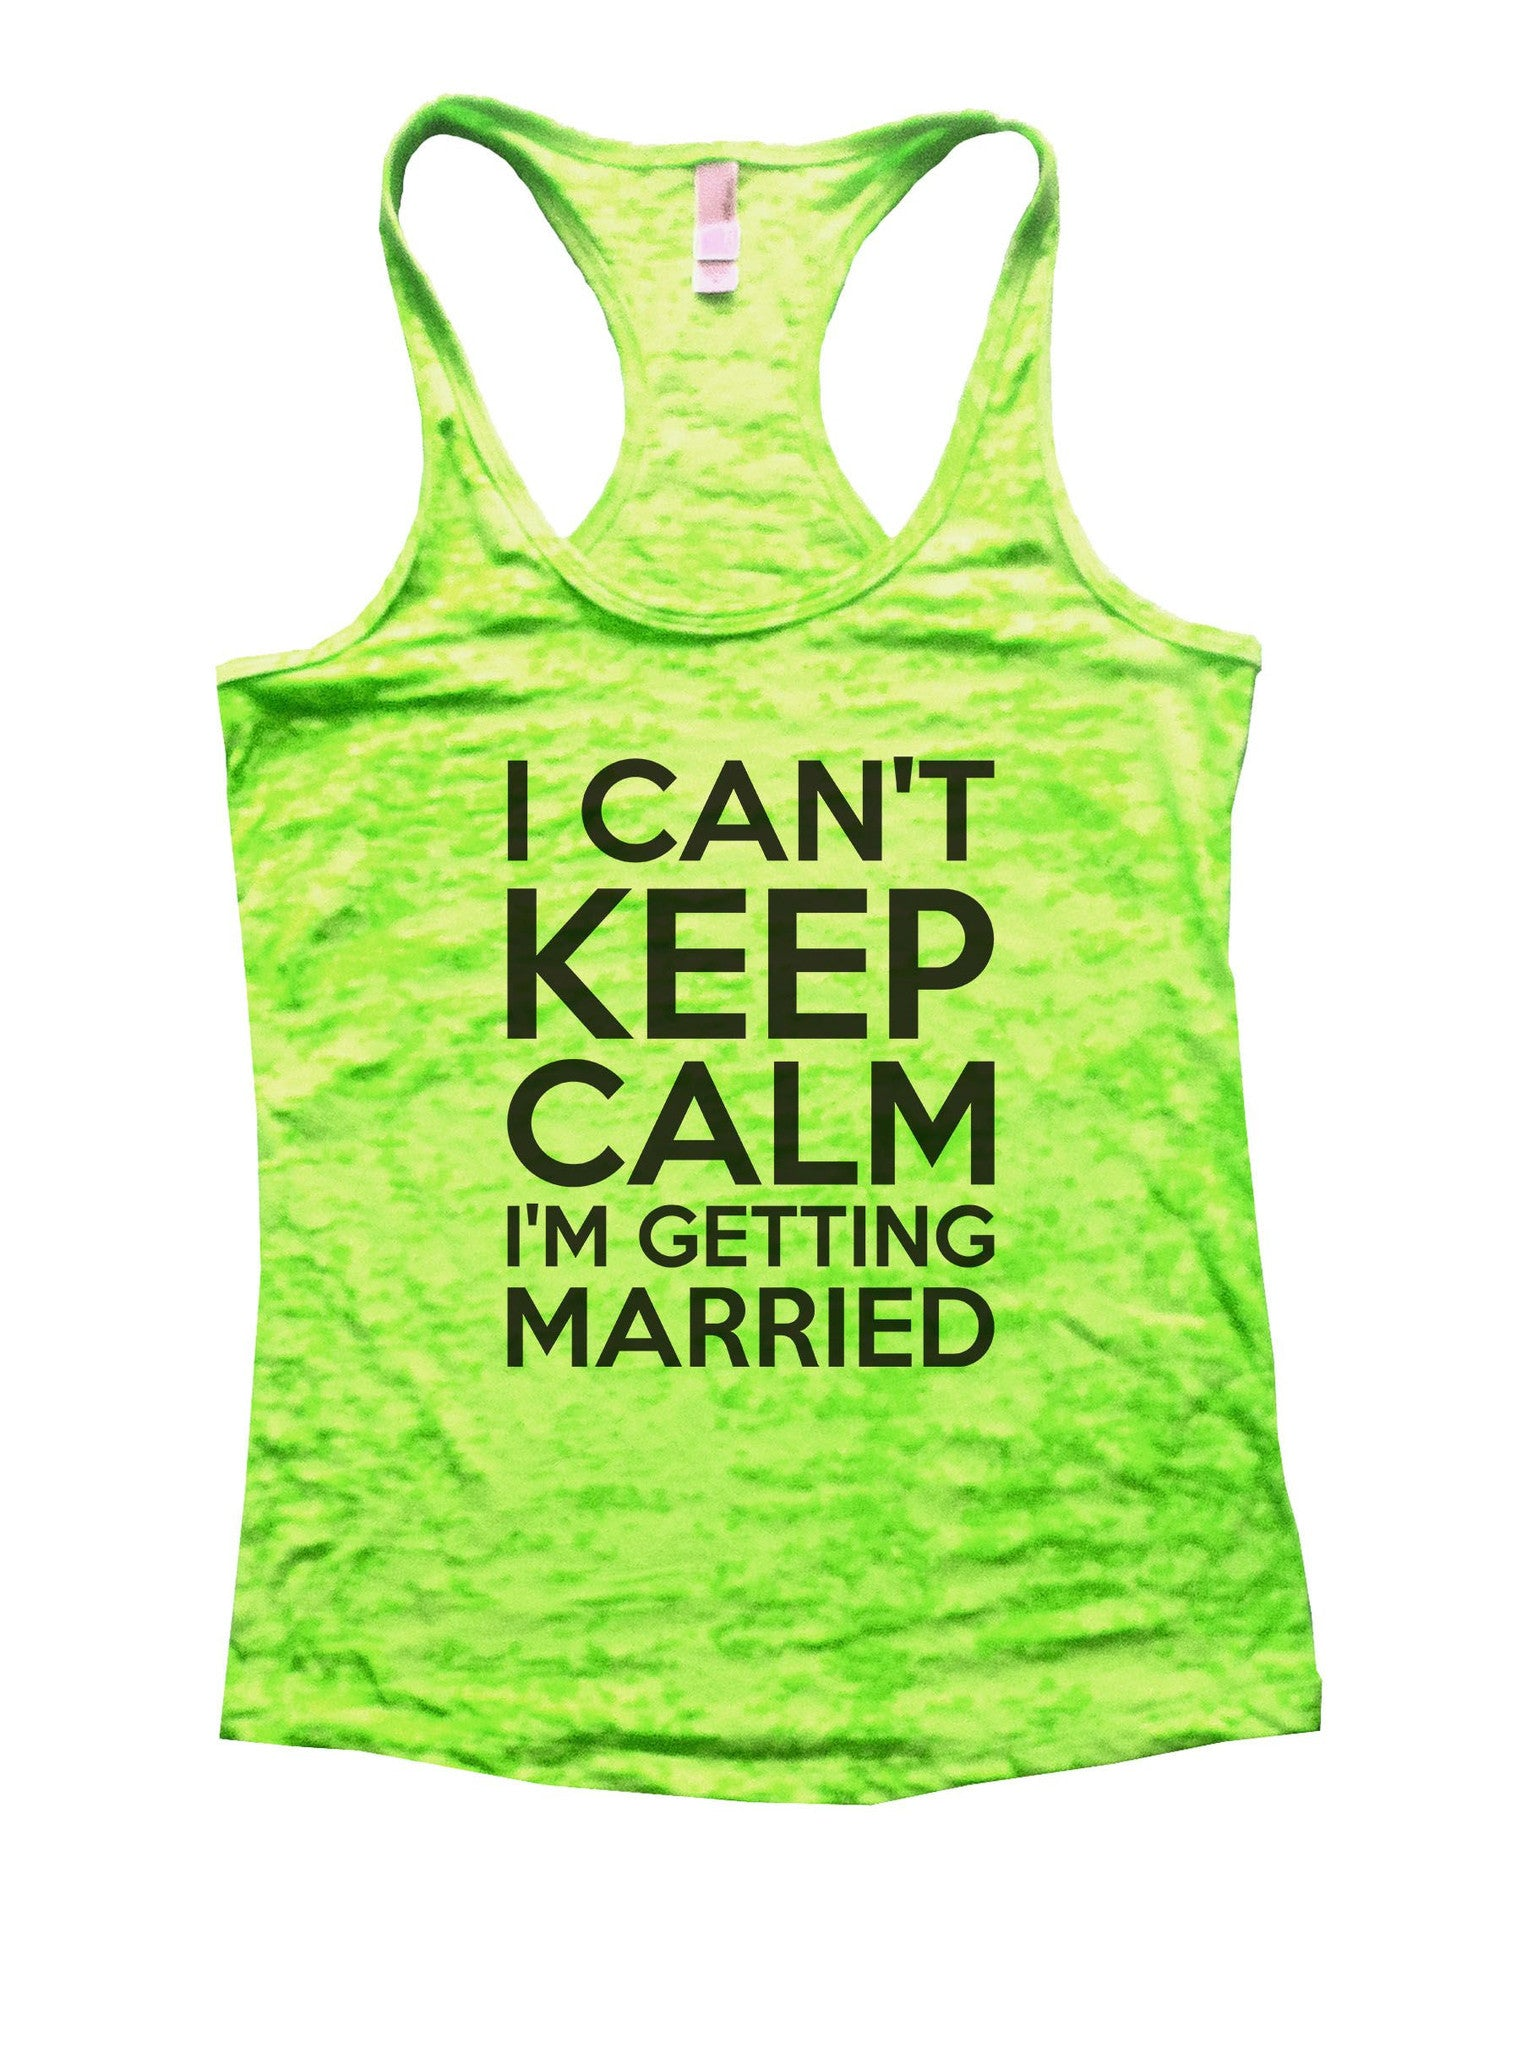 I Can't Keep Calm I'm Getting Married Burnout Tank Top By BurnoutTankTops.com - 887 - Funny Shirts Tank Tops Burnouts and Triblends  - 2